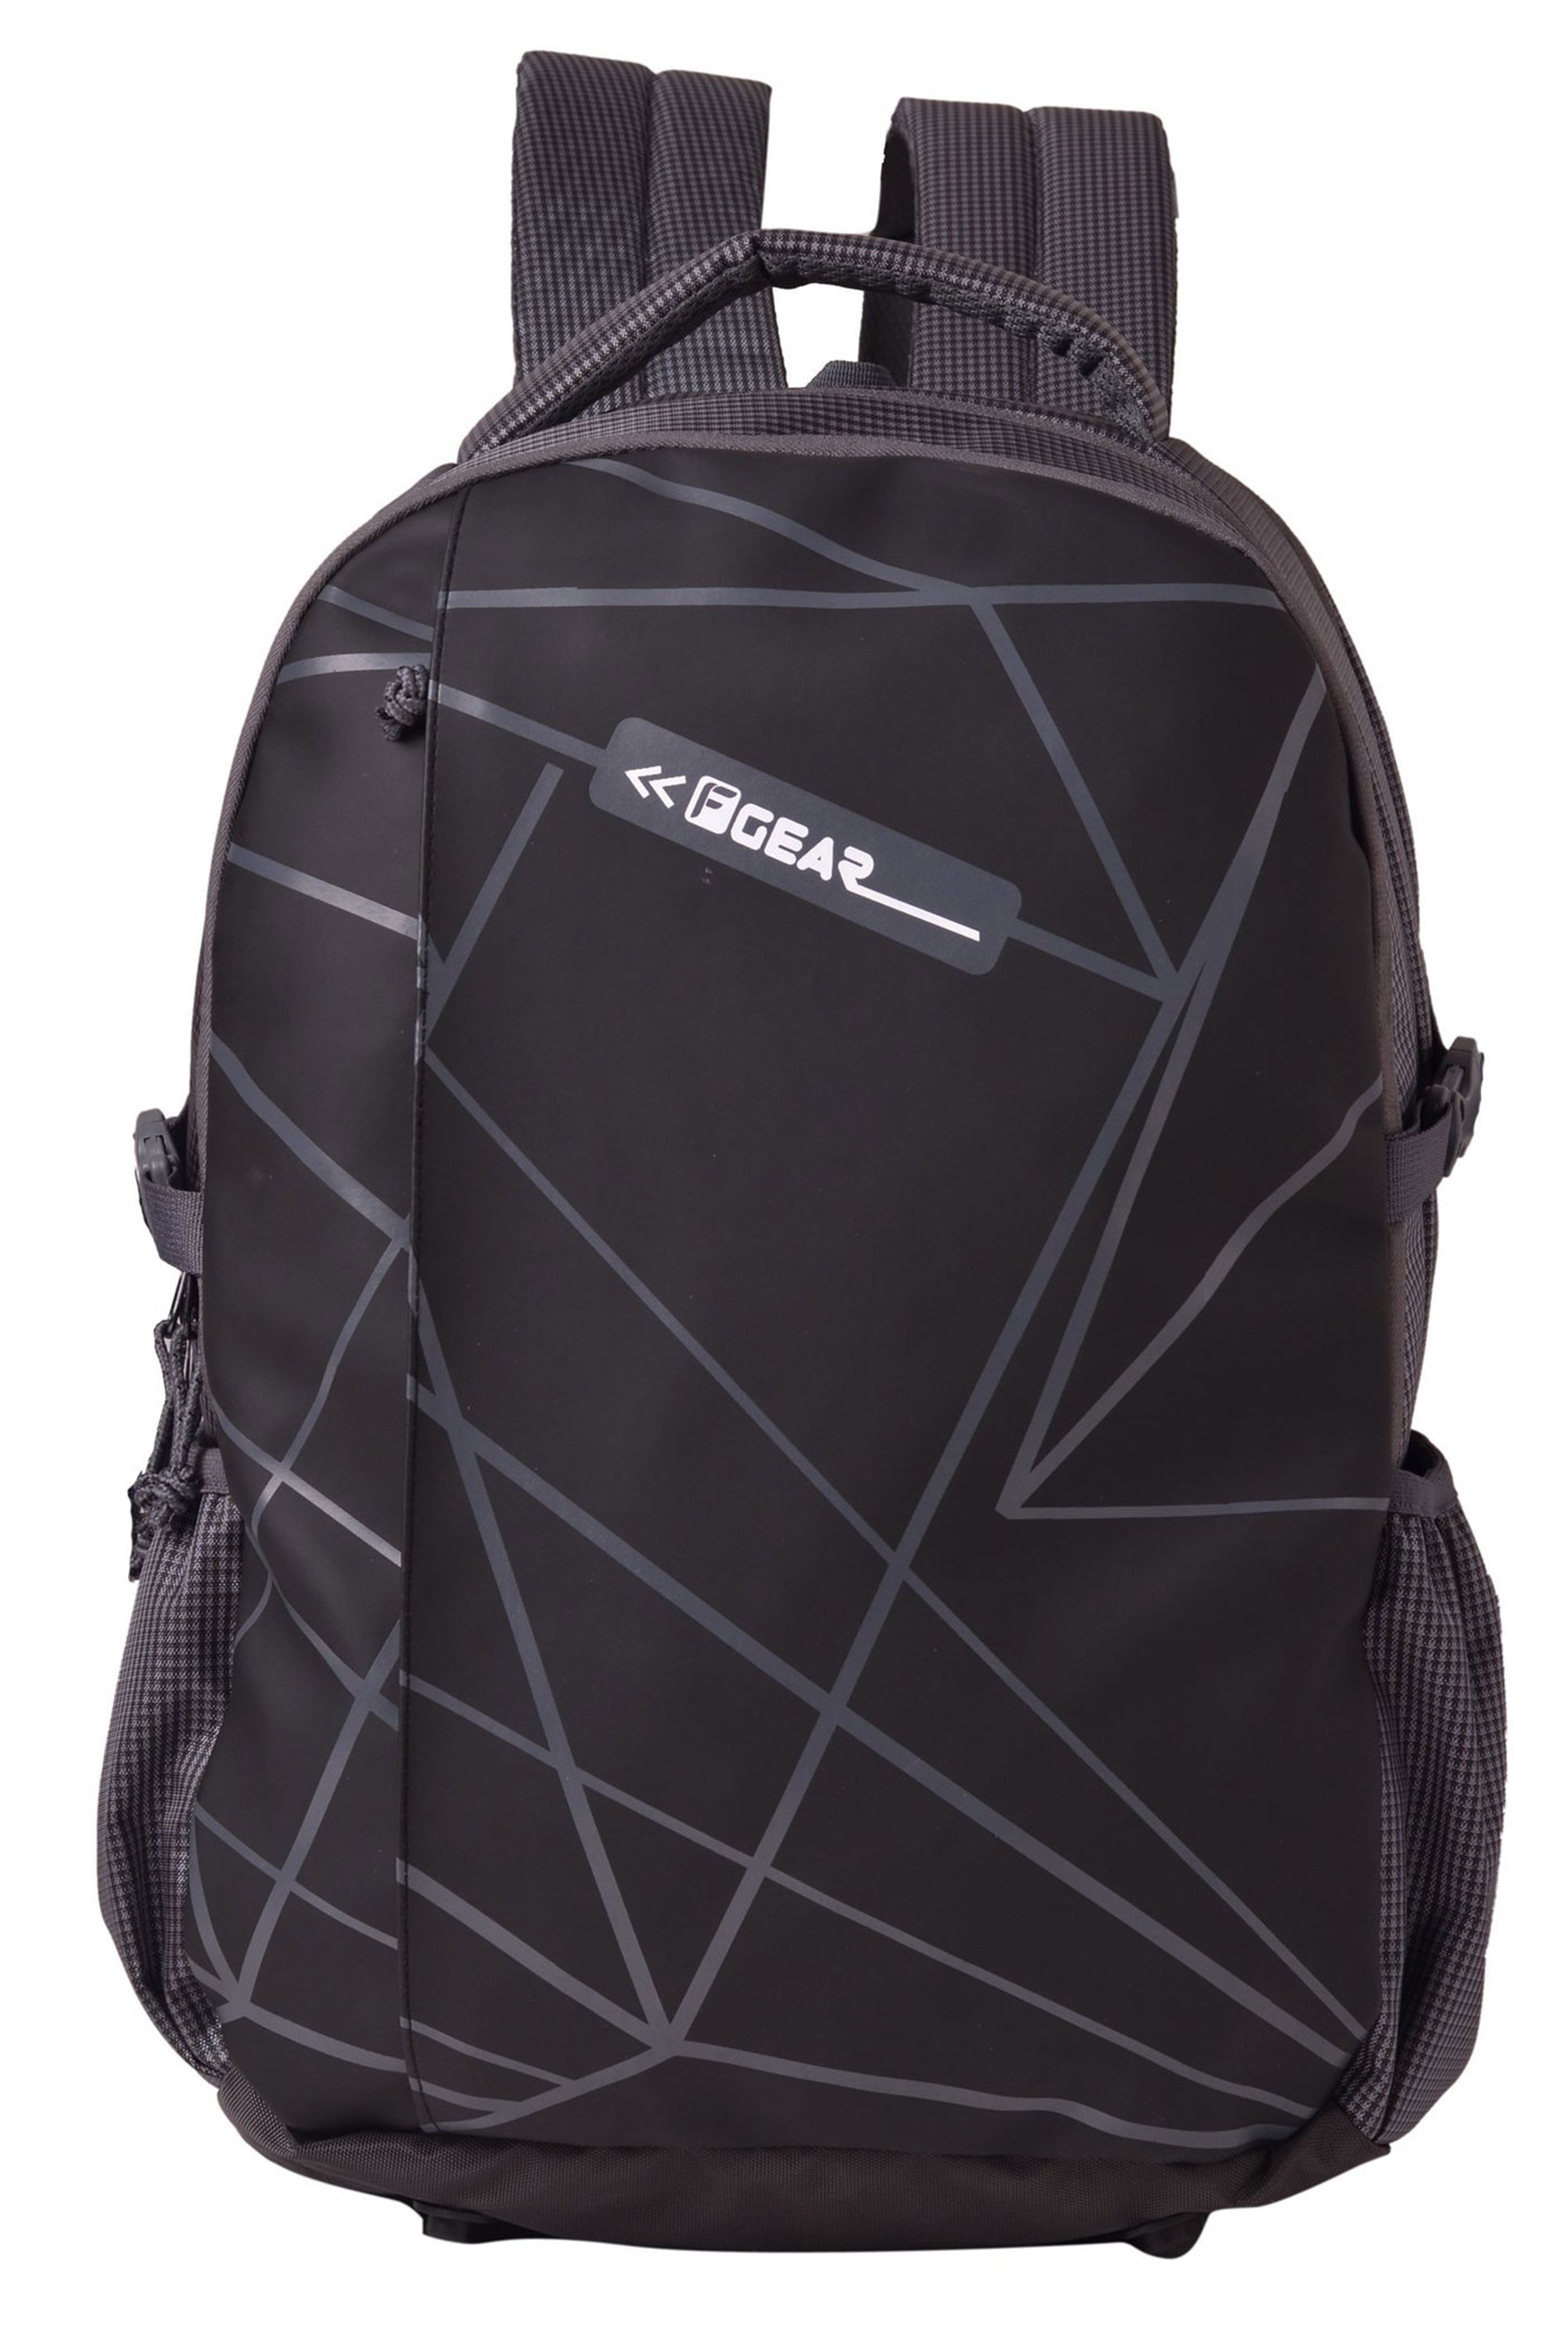 F Gear Talent Grey, Black 32 Liters Laptop Backpack With Rain Cover (2633)